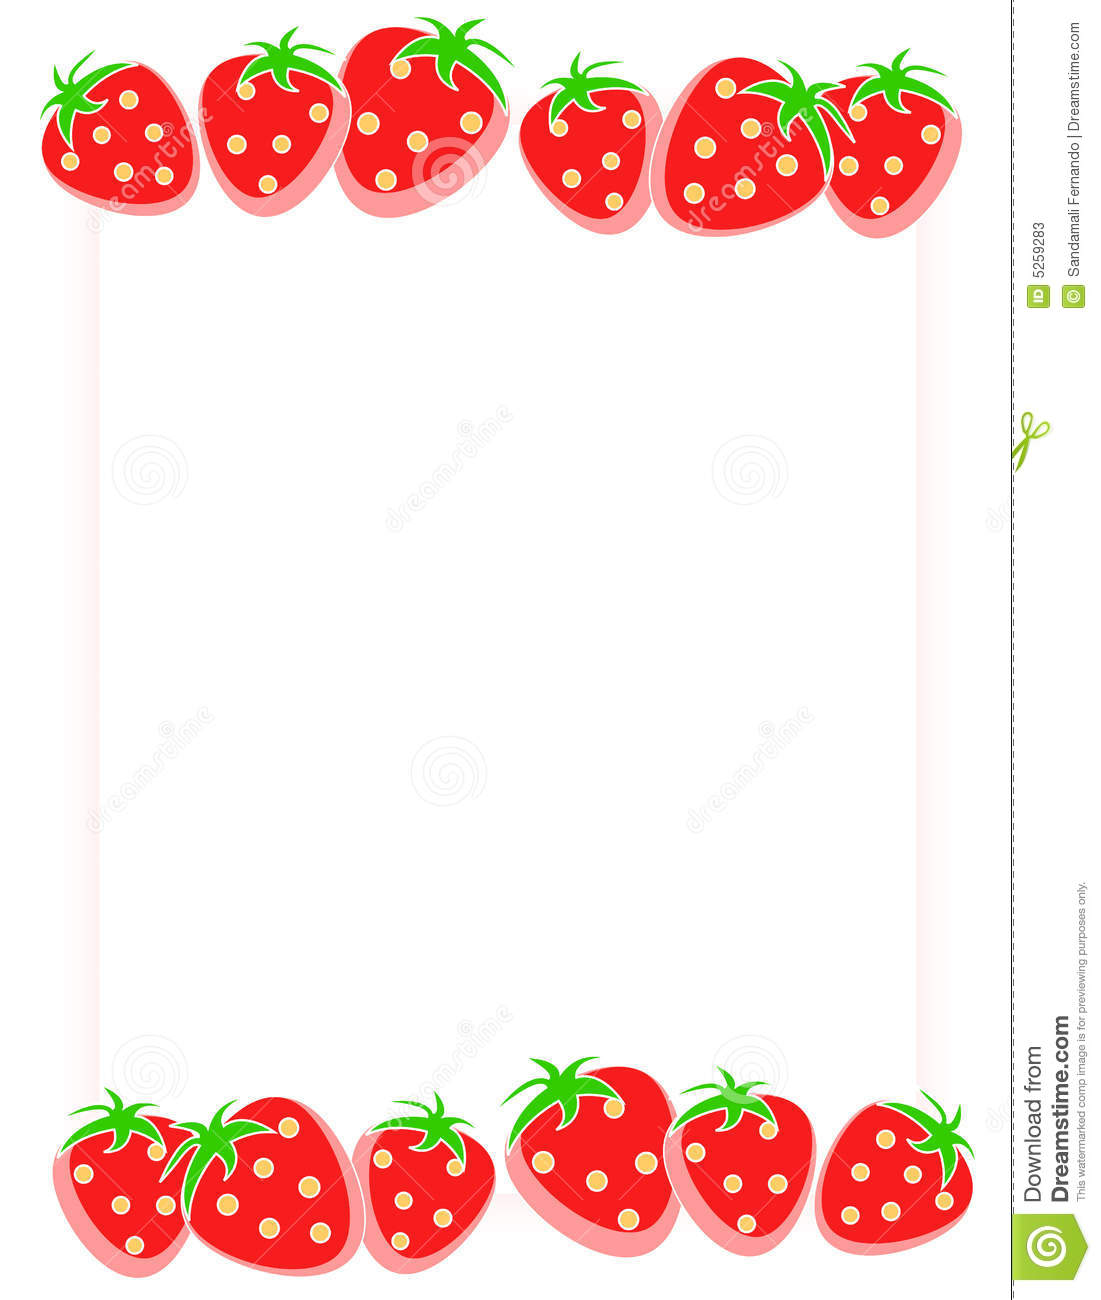 Strawberries Border Clip Art Images   Pictures   Becuo